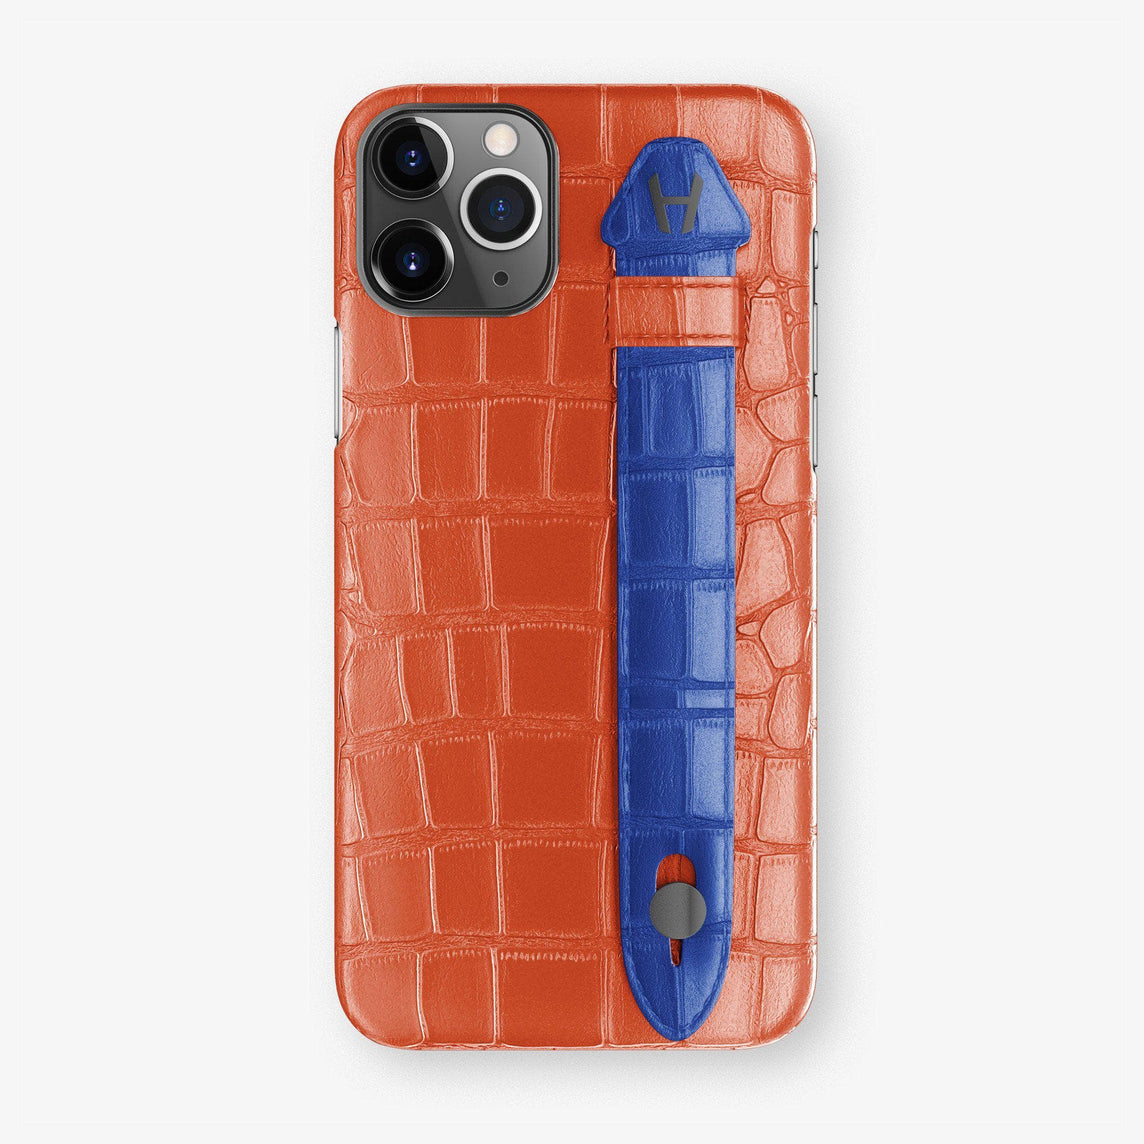 Alligator Finger Case iPhone 11 Pro | Orange Sunset/Peony Blue - Black